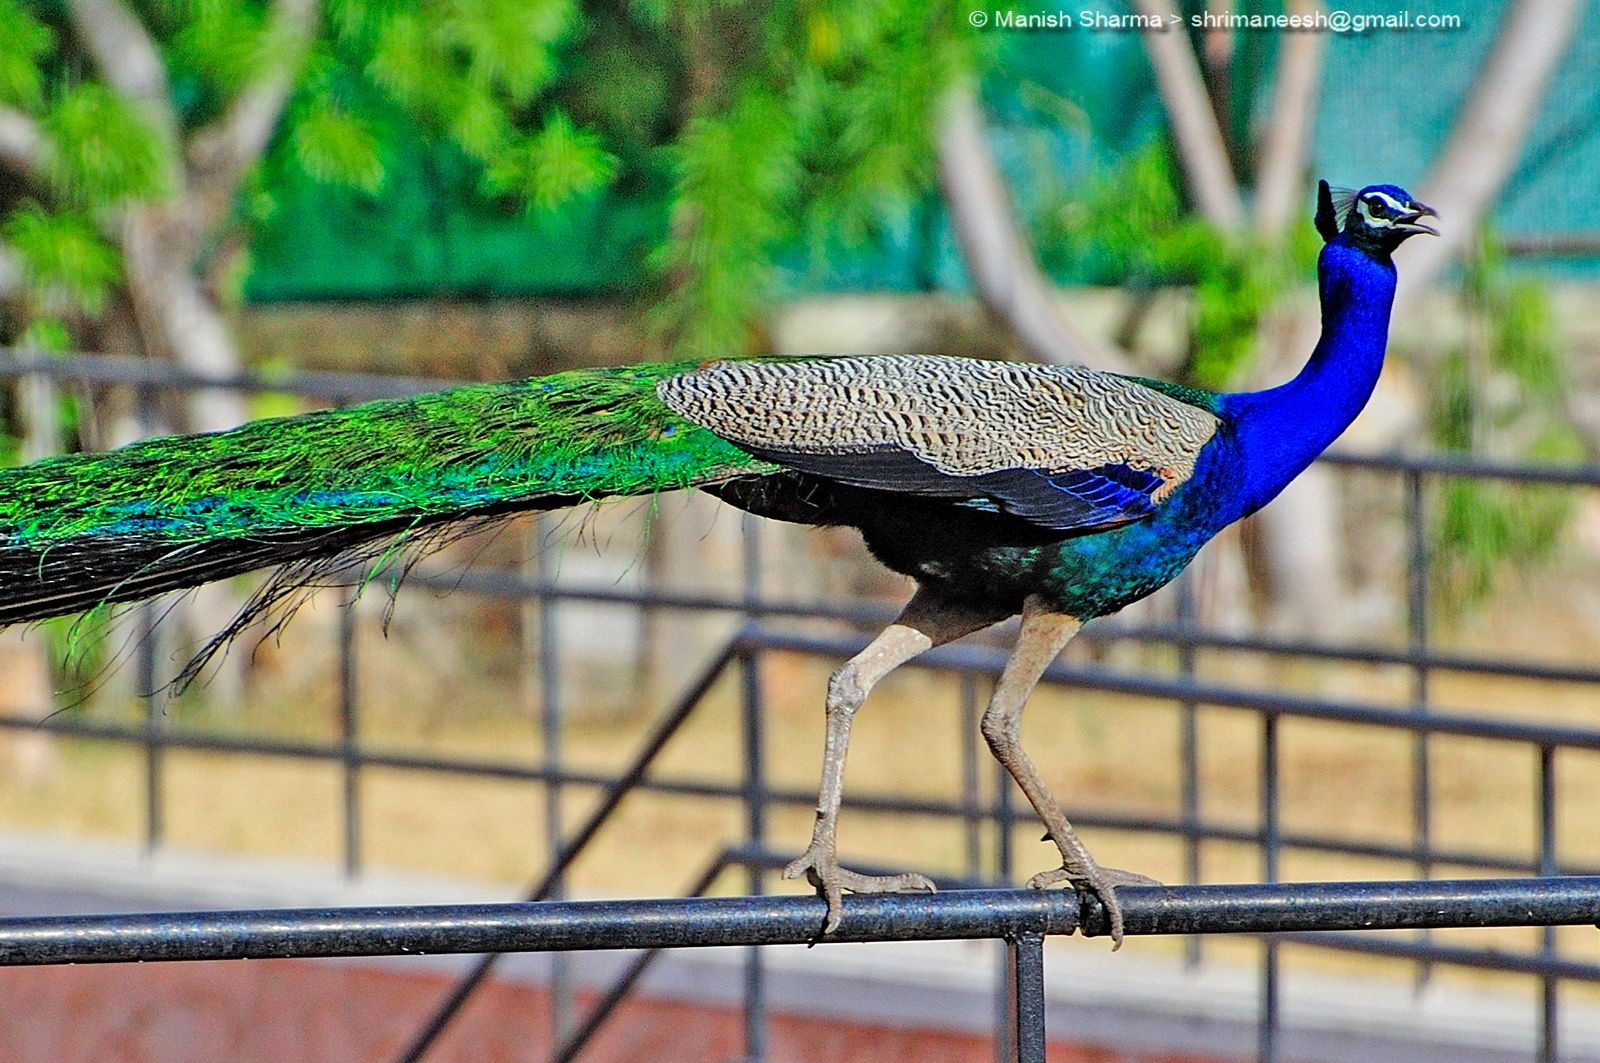 Peacock while aerial walk...Scientific name: Pavo cristatus ,, the national bird of India by Maneesh Sharma